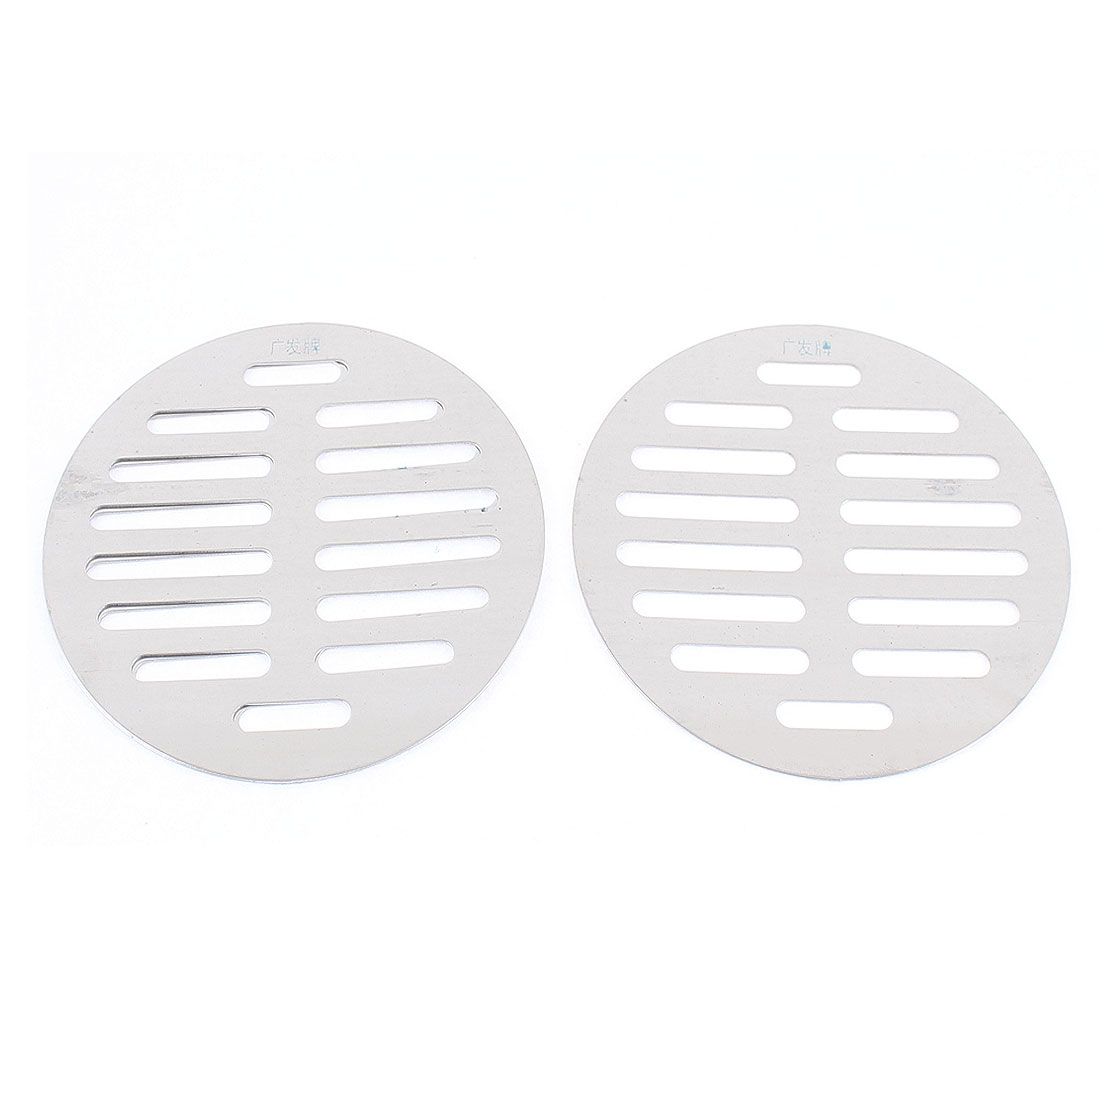 "Stainless Steel Kitchen Bathroom Round Floor Drain Cover 4.4"" 11.3cm 3pcs"